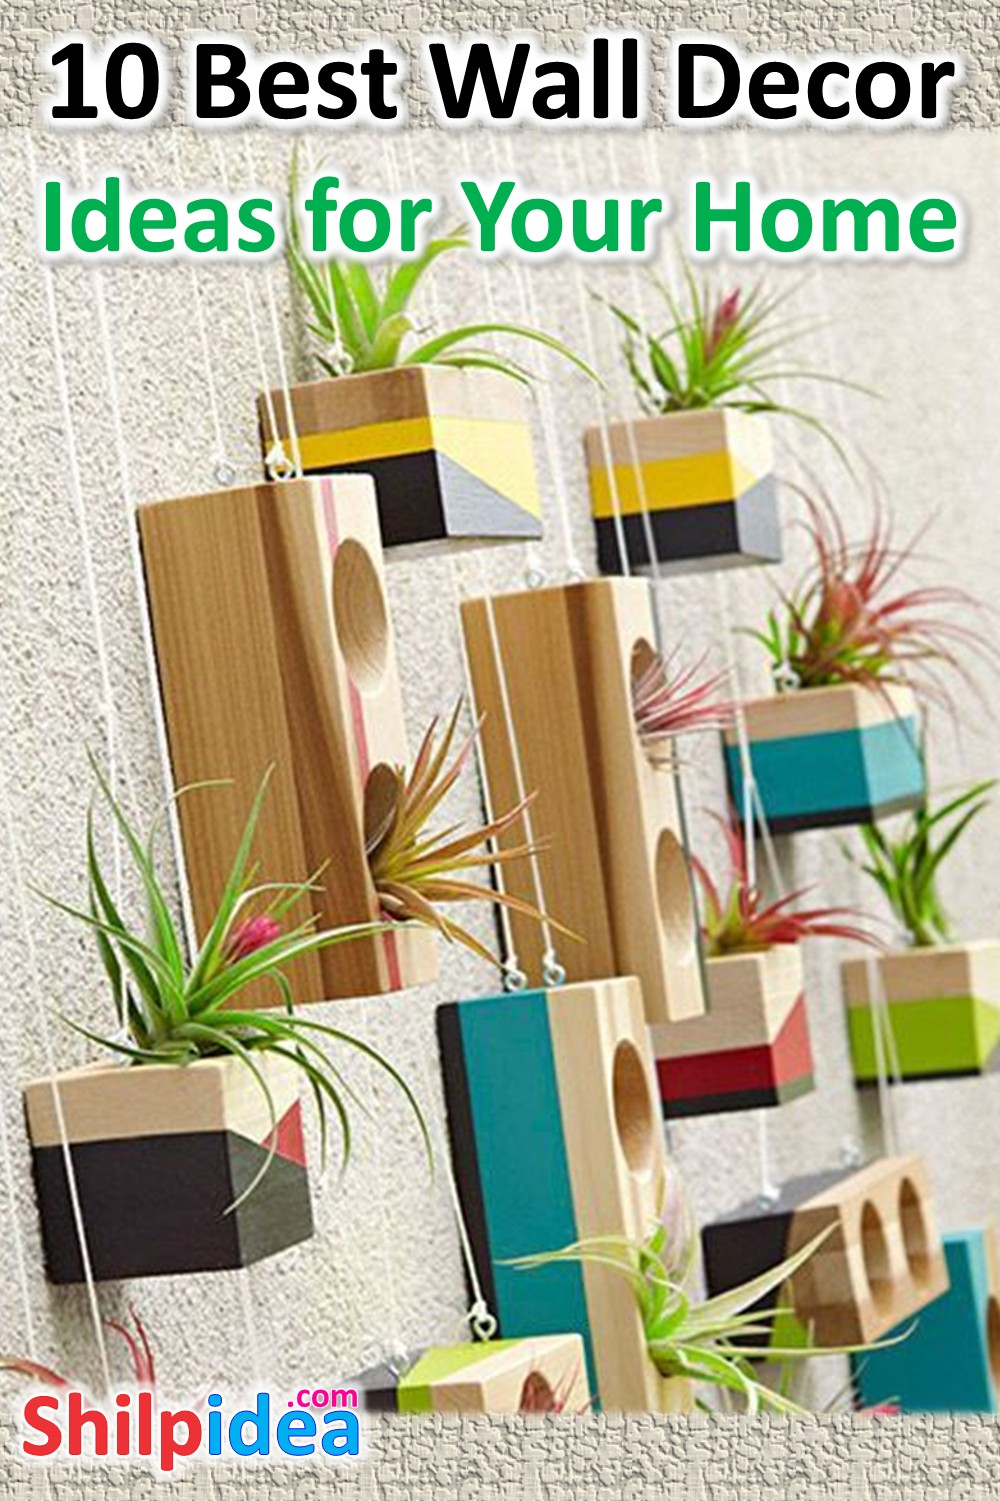 wall-decor-ideas-for-home-shilpidea-pin